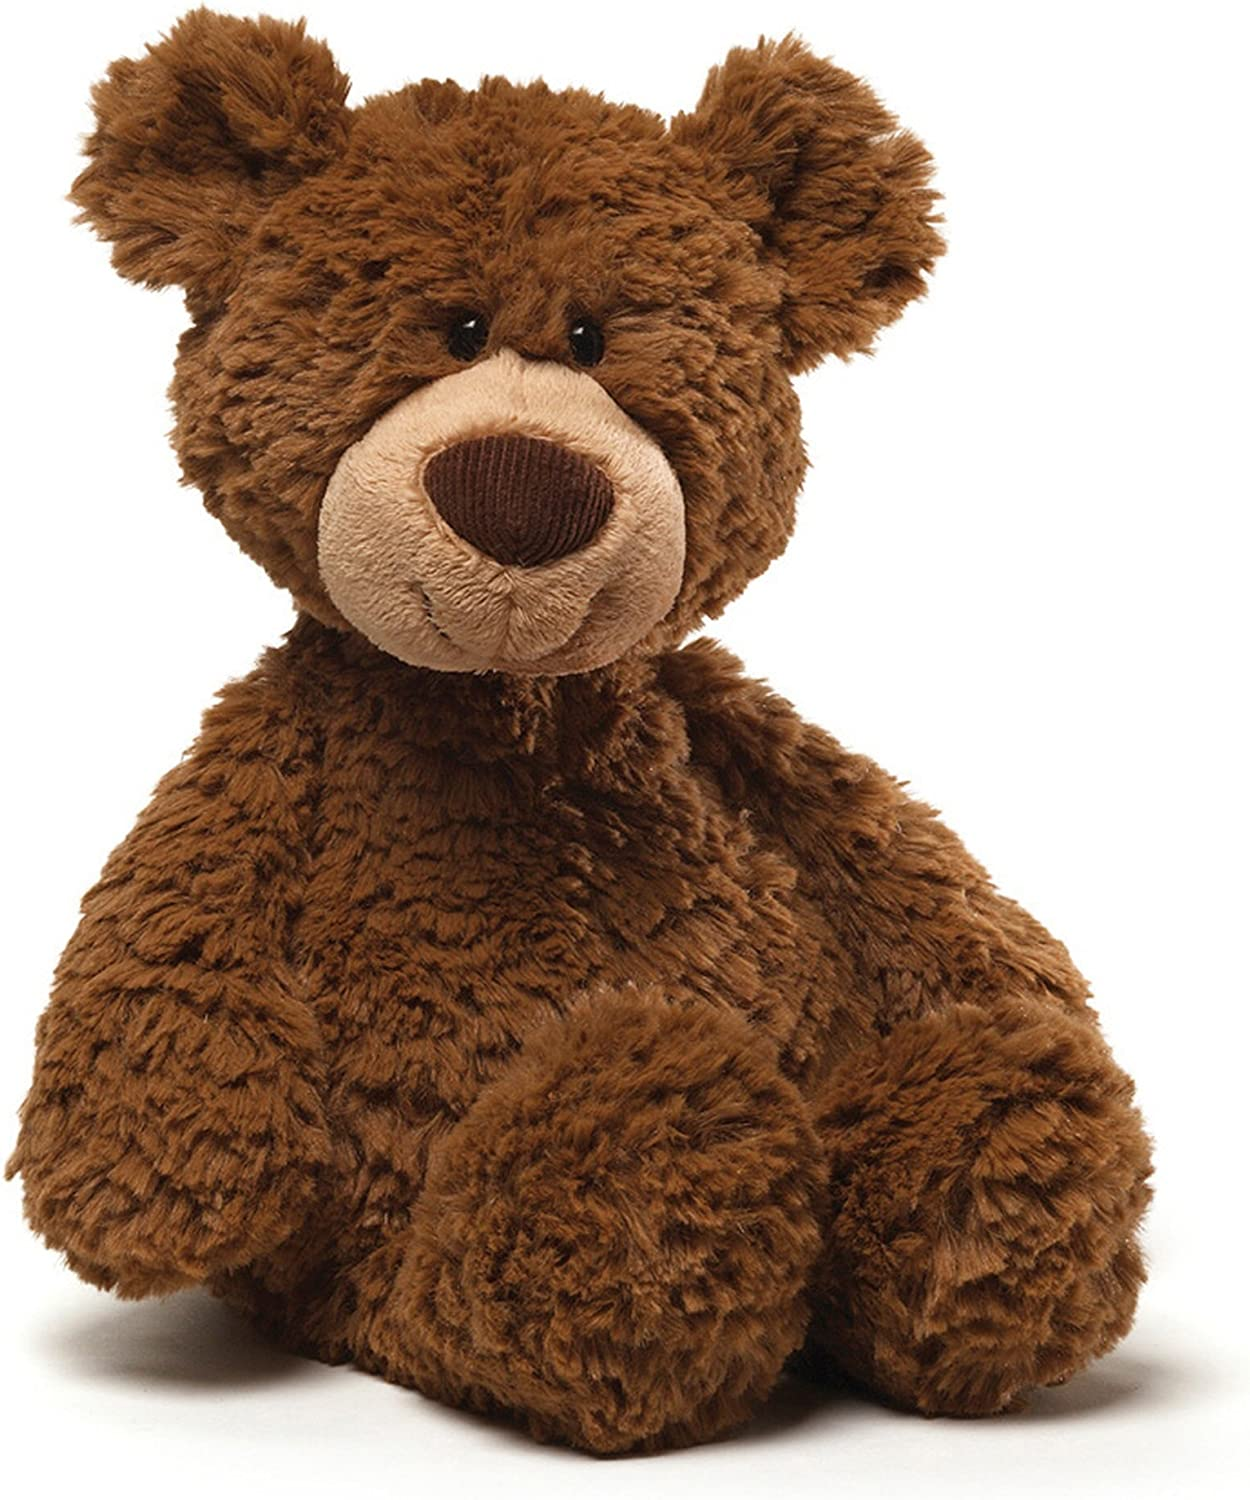 "GUND Pinchy Brown Smiling Teddy Bear Plush Stuffed Animal, 17"": Toys & Games"